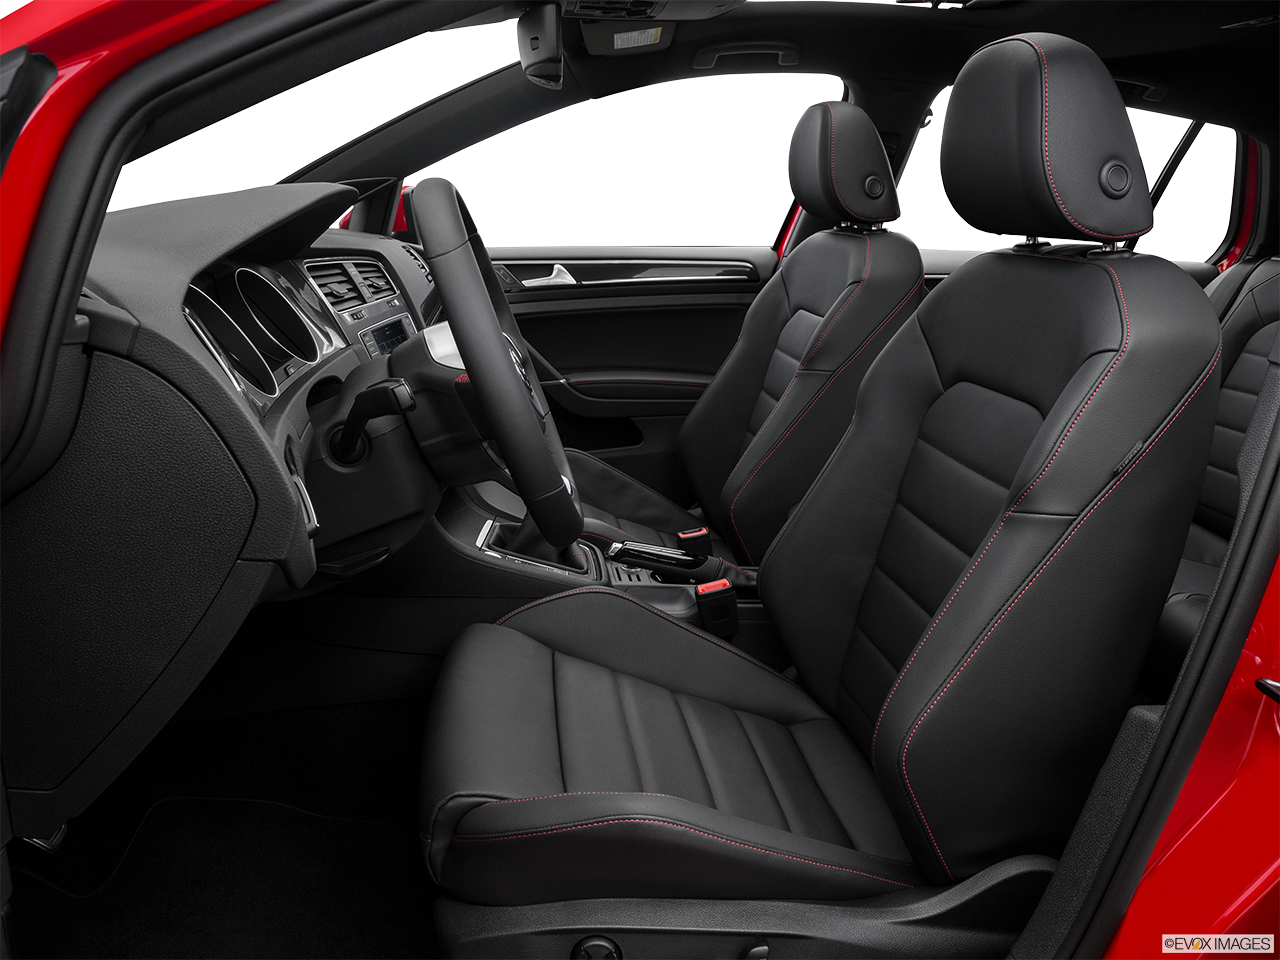 Research The 2016 Volkswagen Golf GTI in Franklin